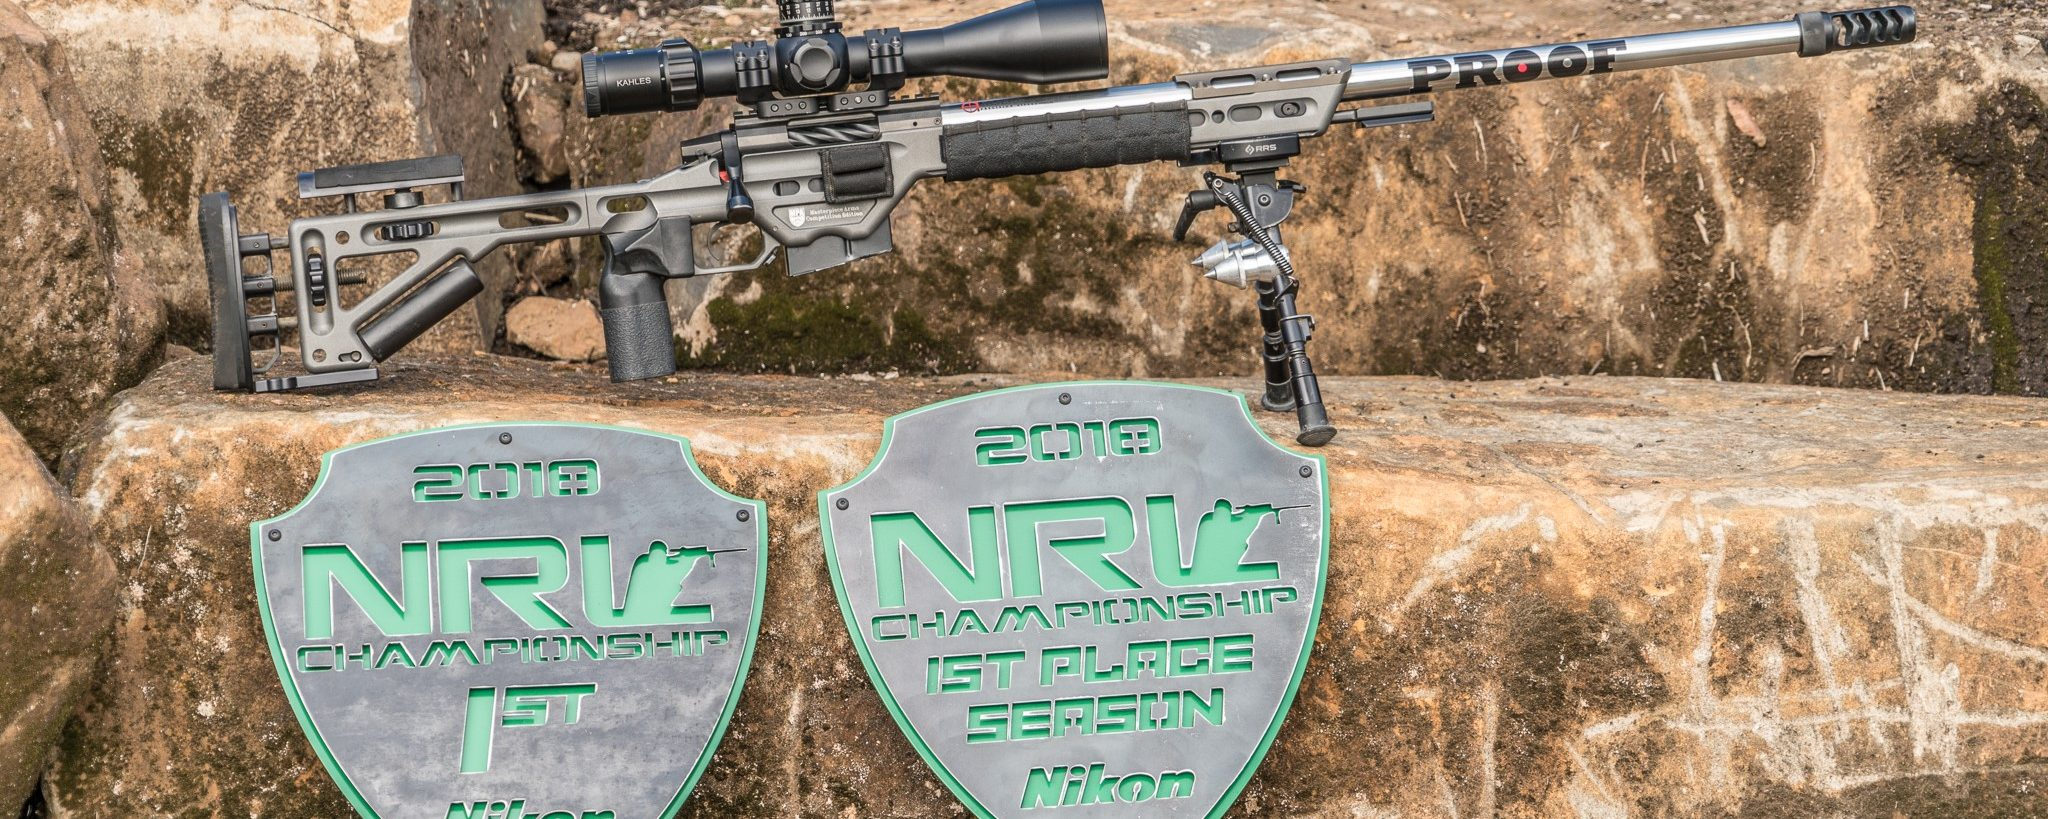 Long Range Shooting Champion Jon Pynch Closes out 2018 with Multiple Wins